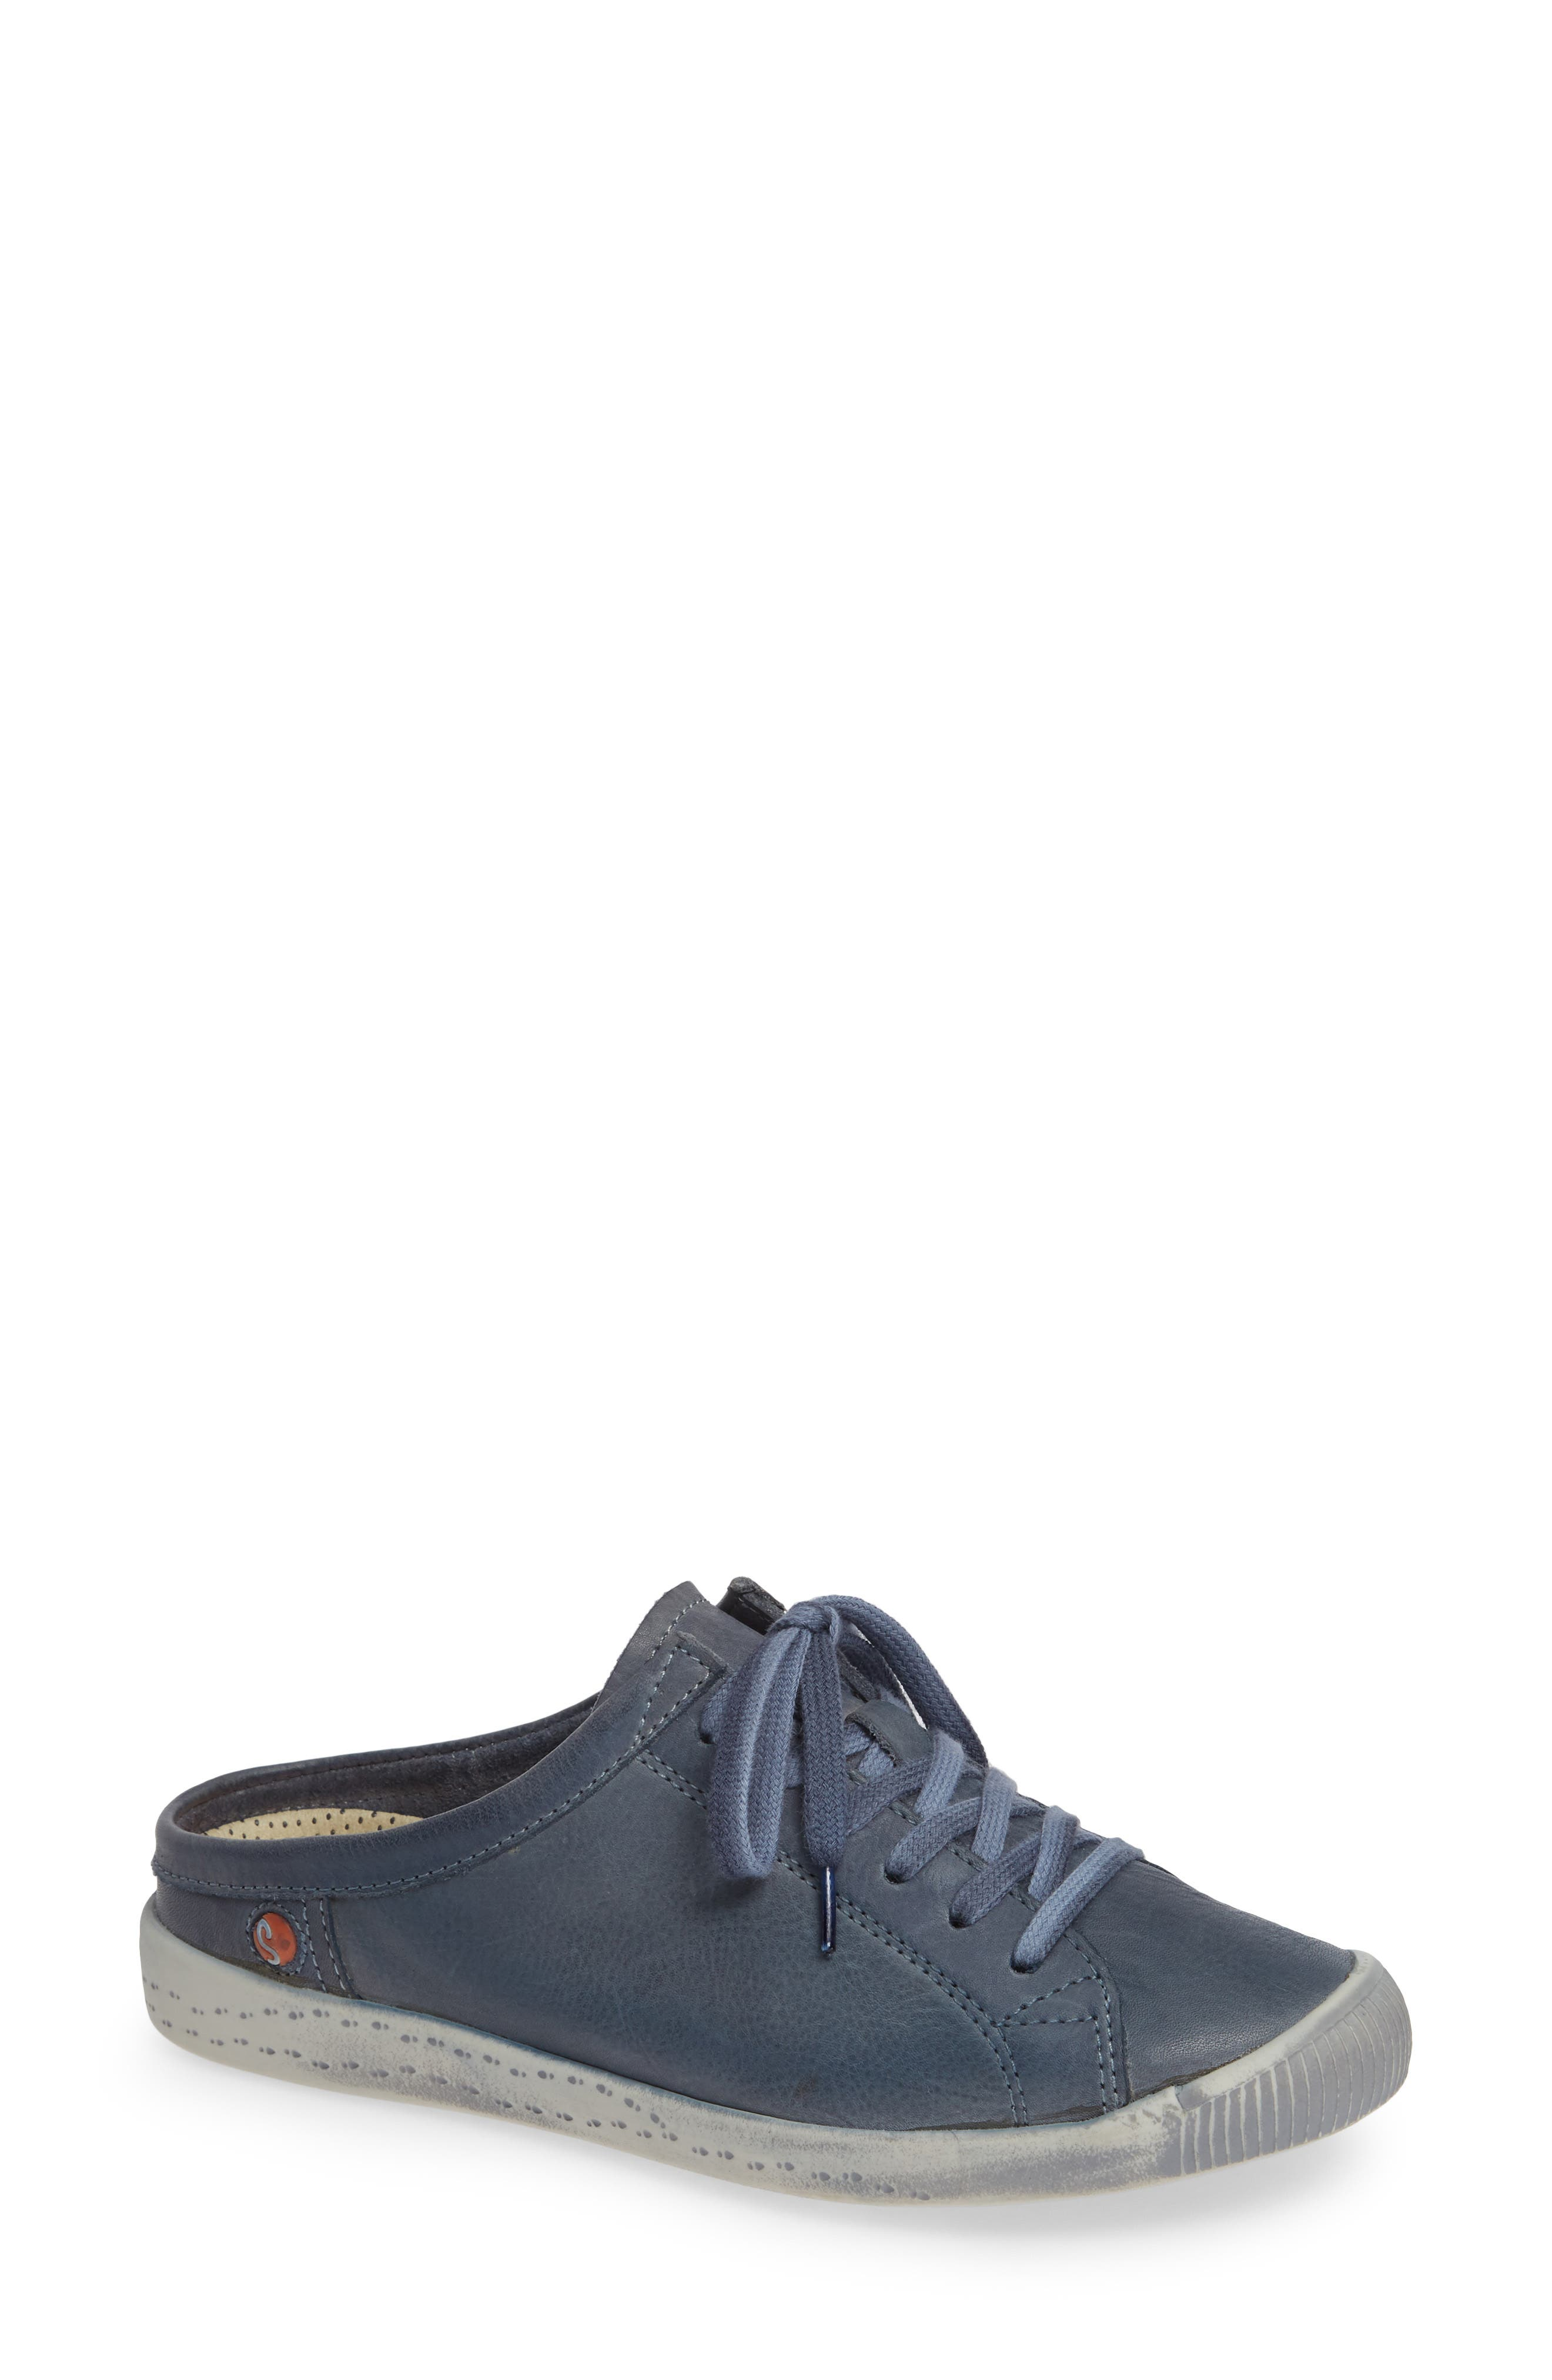 Softinos By Fly London Ije Sneaker Mule - Blue